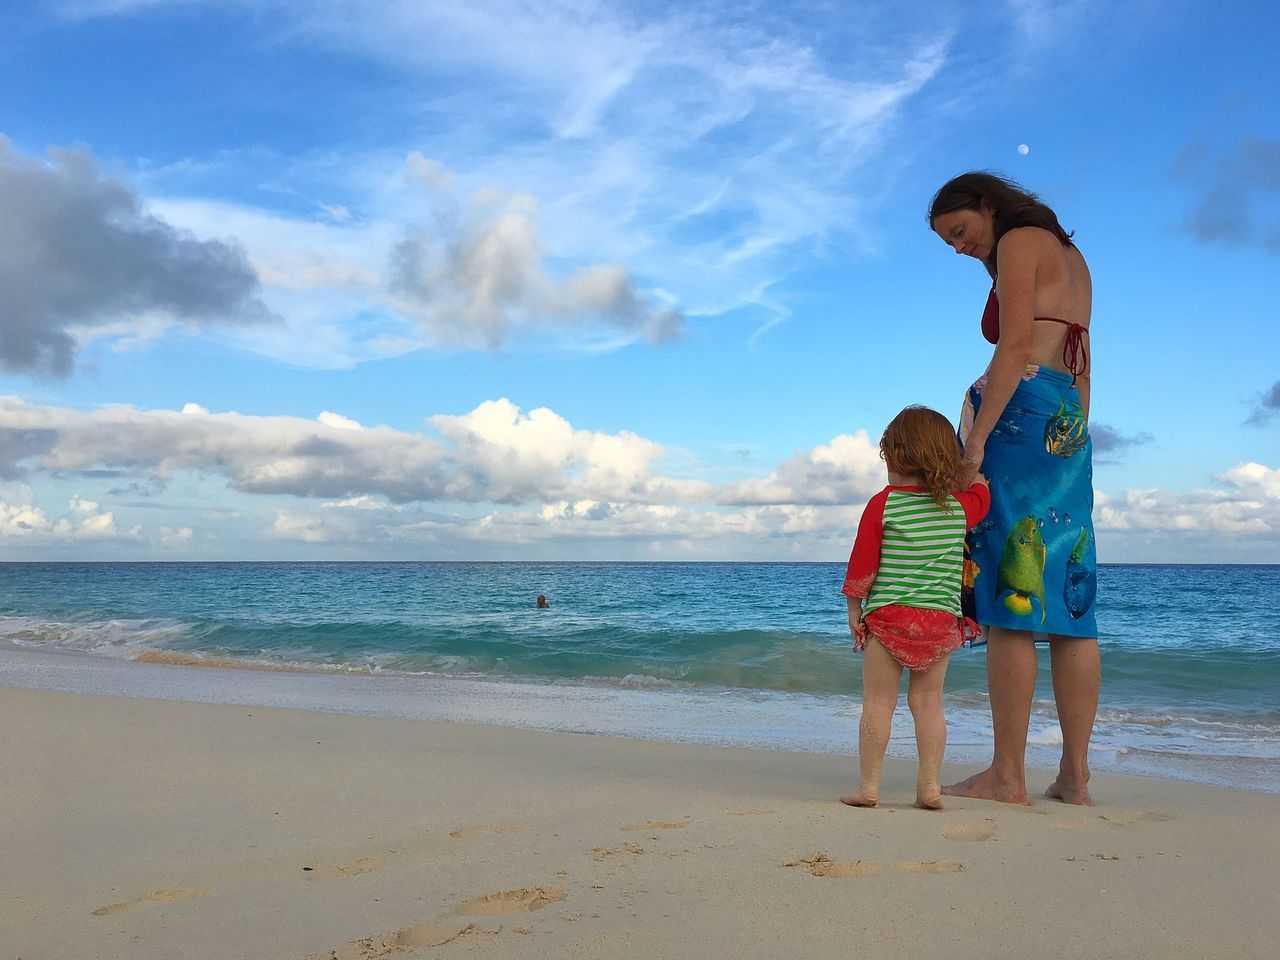 Beach Life Bermuda Relaxing Islandlife Beach Beachlife Mother & Daughter Sky Sky And Clouds Moon Daughter Paradise Inthemoment Showcase July Two Is Better Than One The Portraitist - 2017 EyeEm Awards